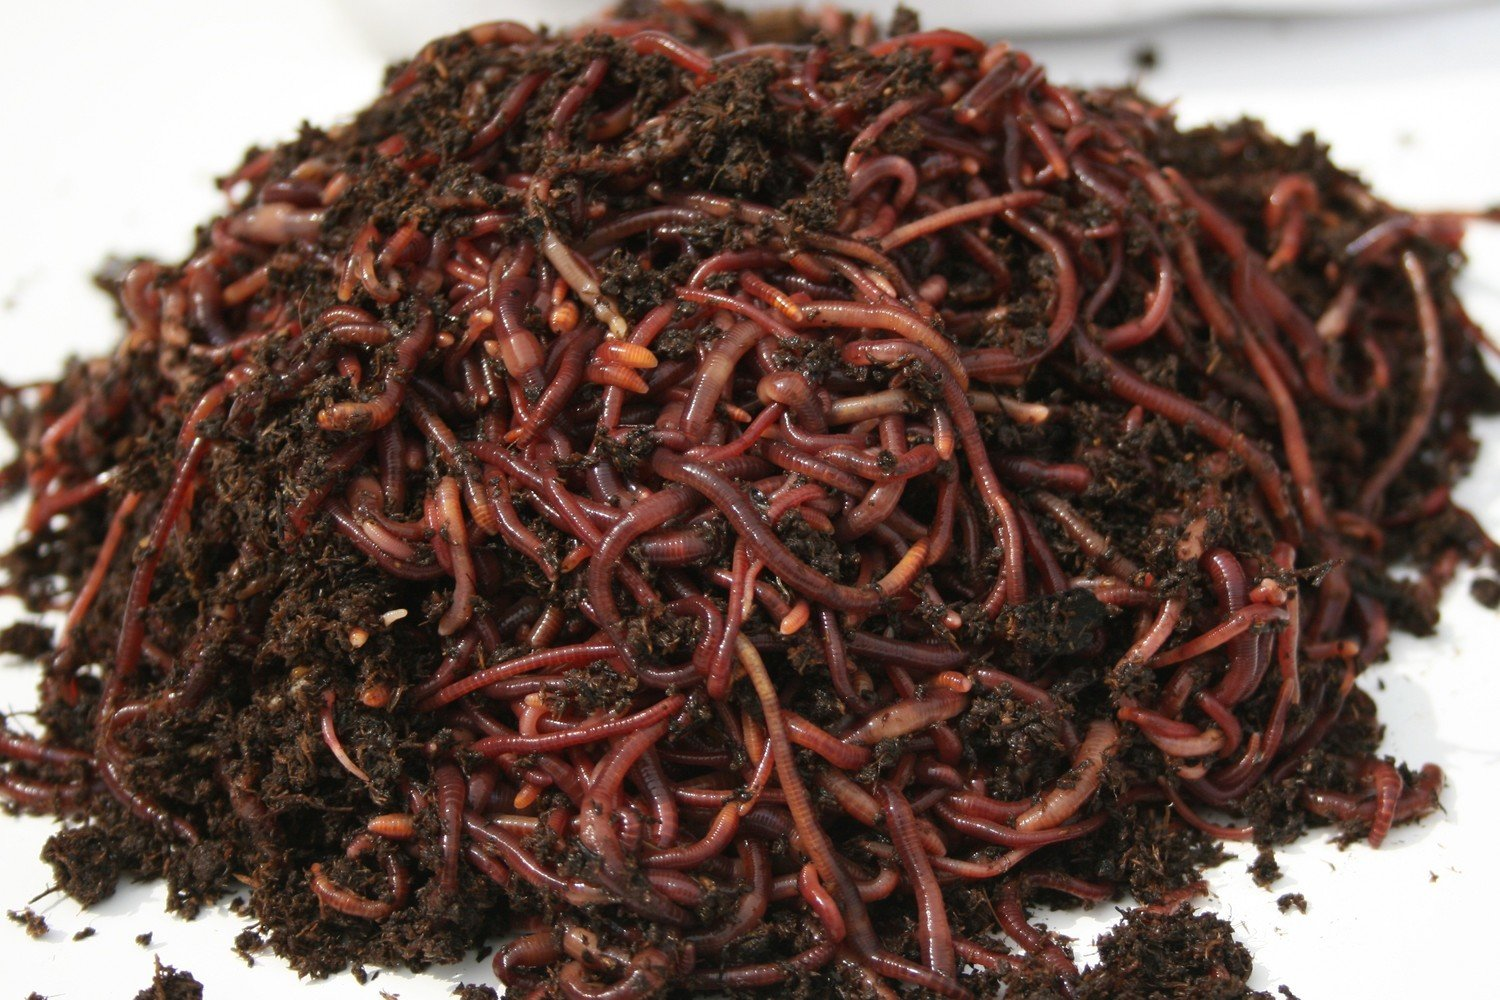 Red Worms 2 lbs